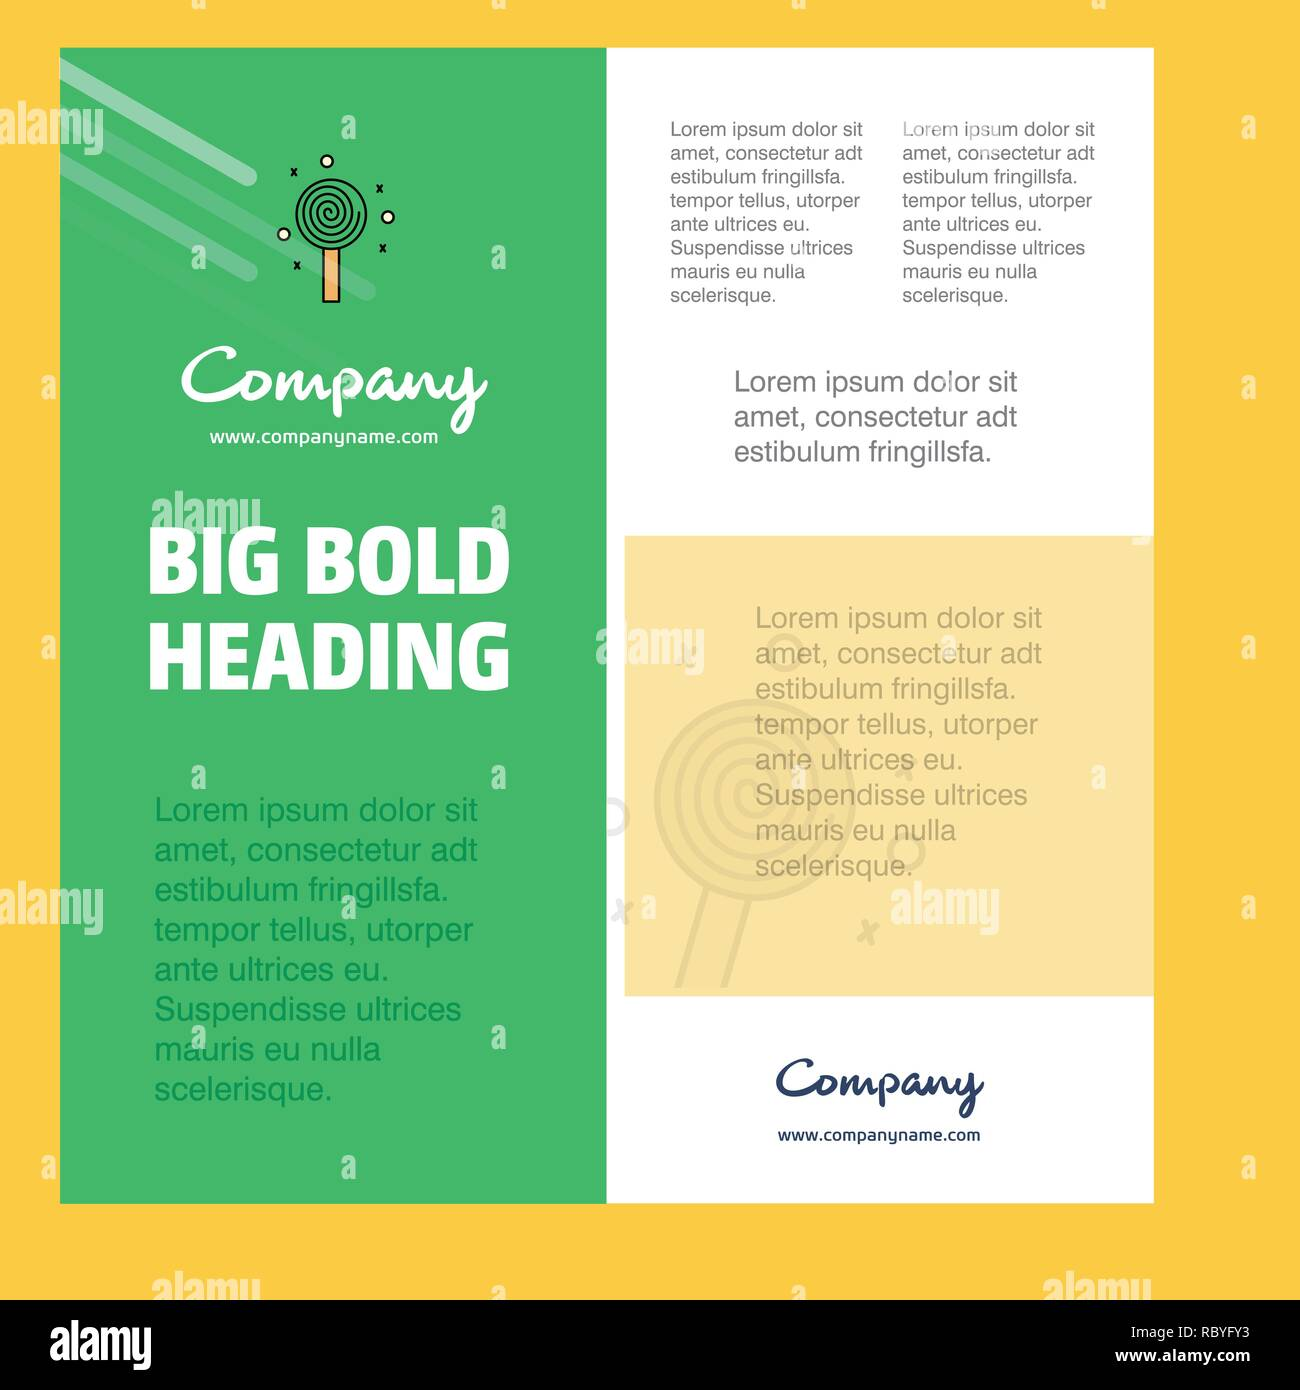 Candy Business Company Poster Template. with place for text and images. vector background - Stock Vector